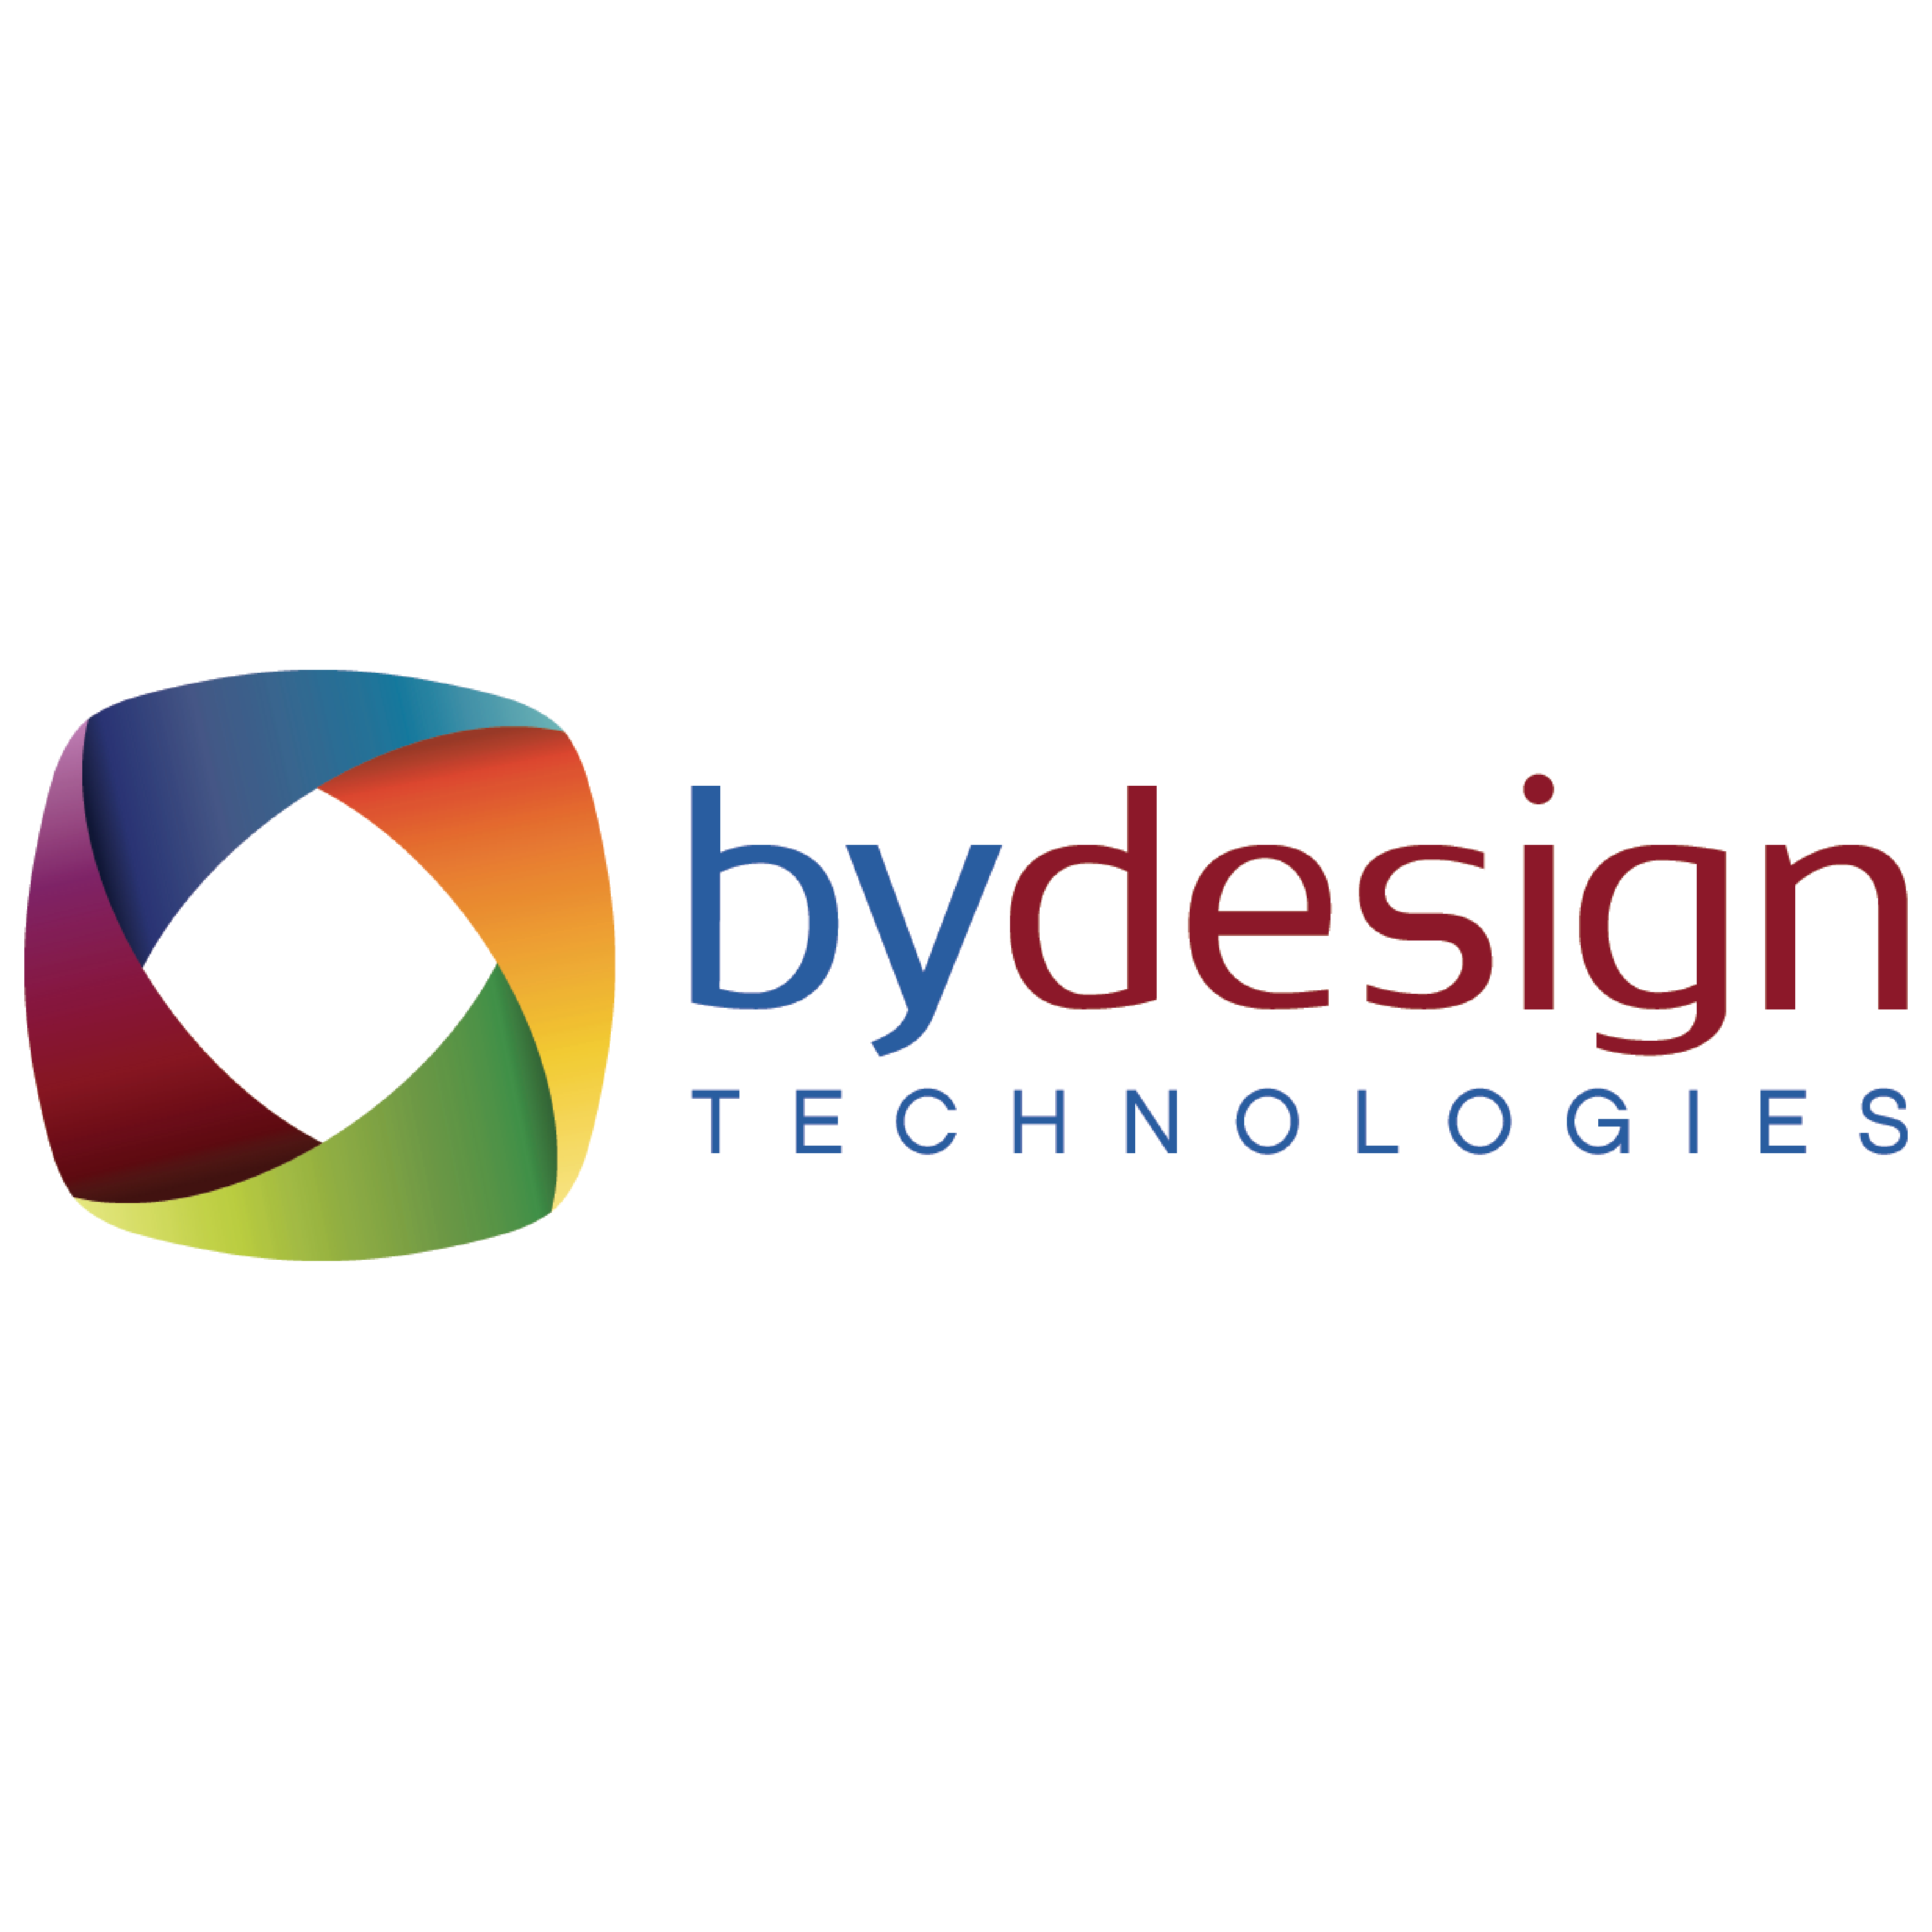 By Design Technologies Shipedge Integration